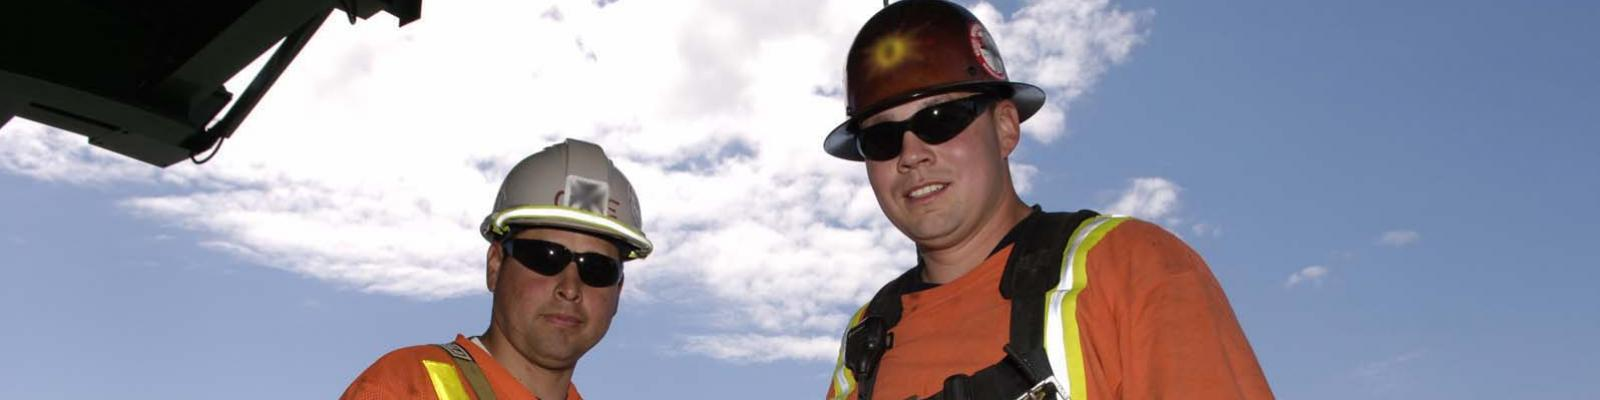 Aboriginal journeyman ironworkers construction workers